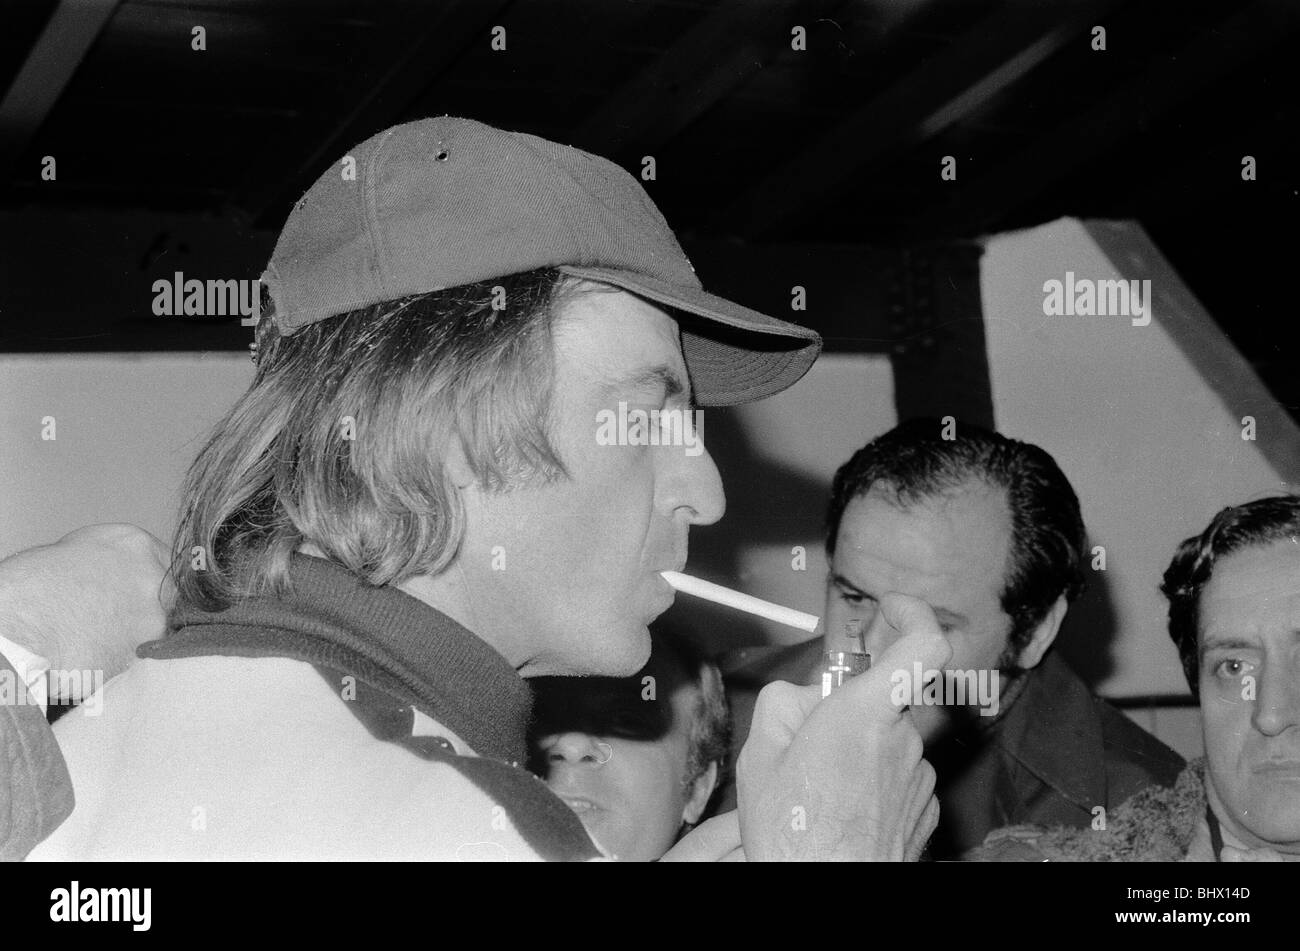 1978 World Cup Final in Buenos Aires, Argentina. Argentina 3 v Holland 1. Argentina manager Cesar Luis Menotti smoking - Stock Image